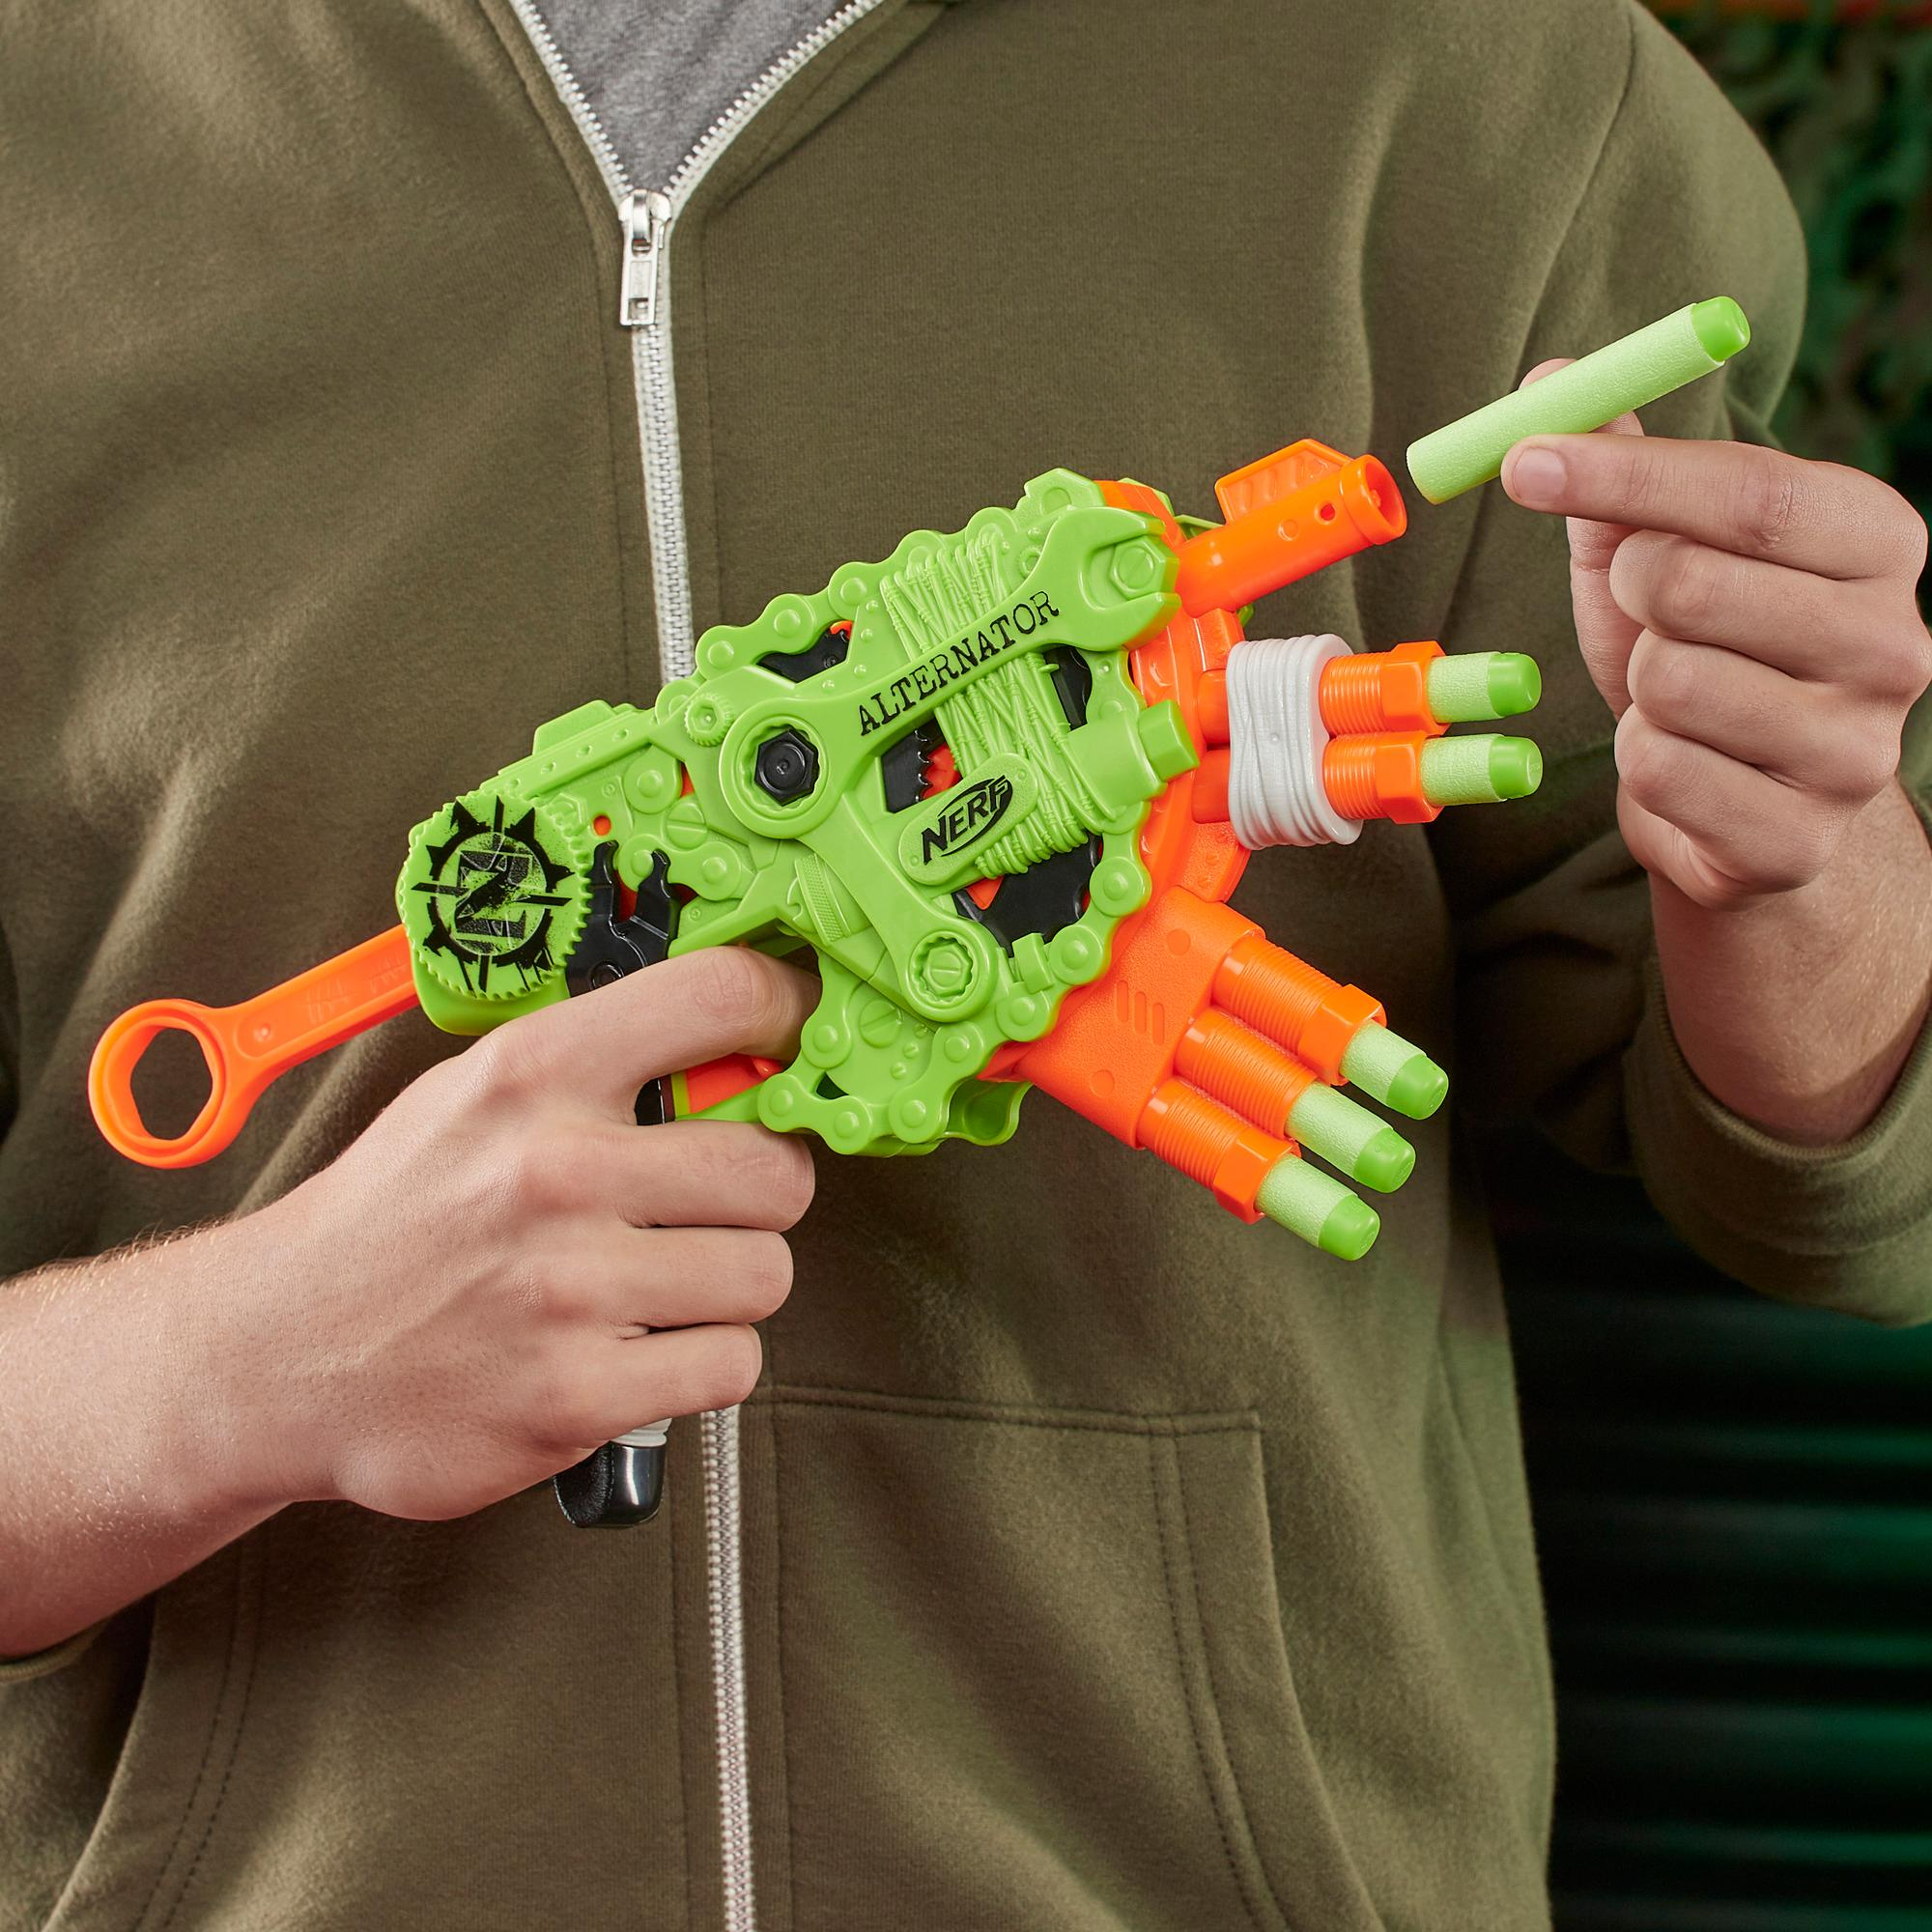 Nerf Zombie Strike Alternator Blaster – enthält 12 Nerf Zombie Strike Elite Darts – für Kinder, Teenager, Erwachsene